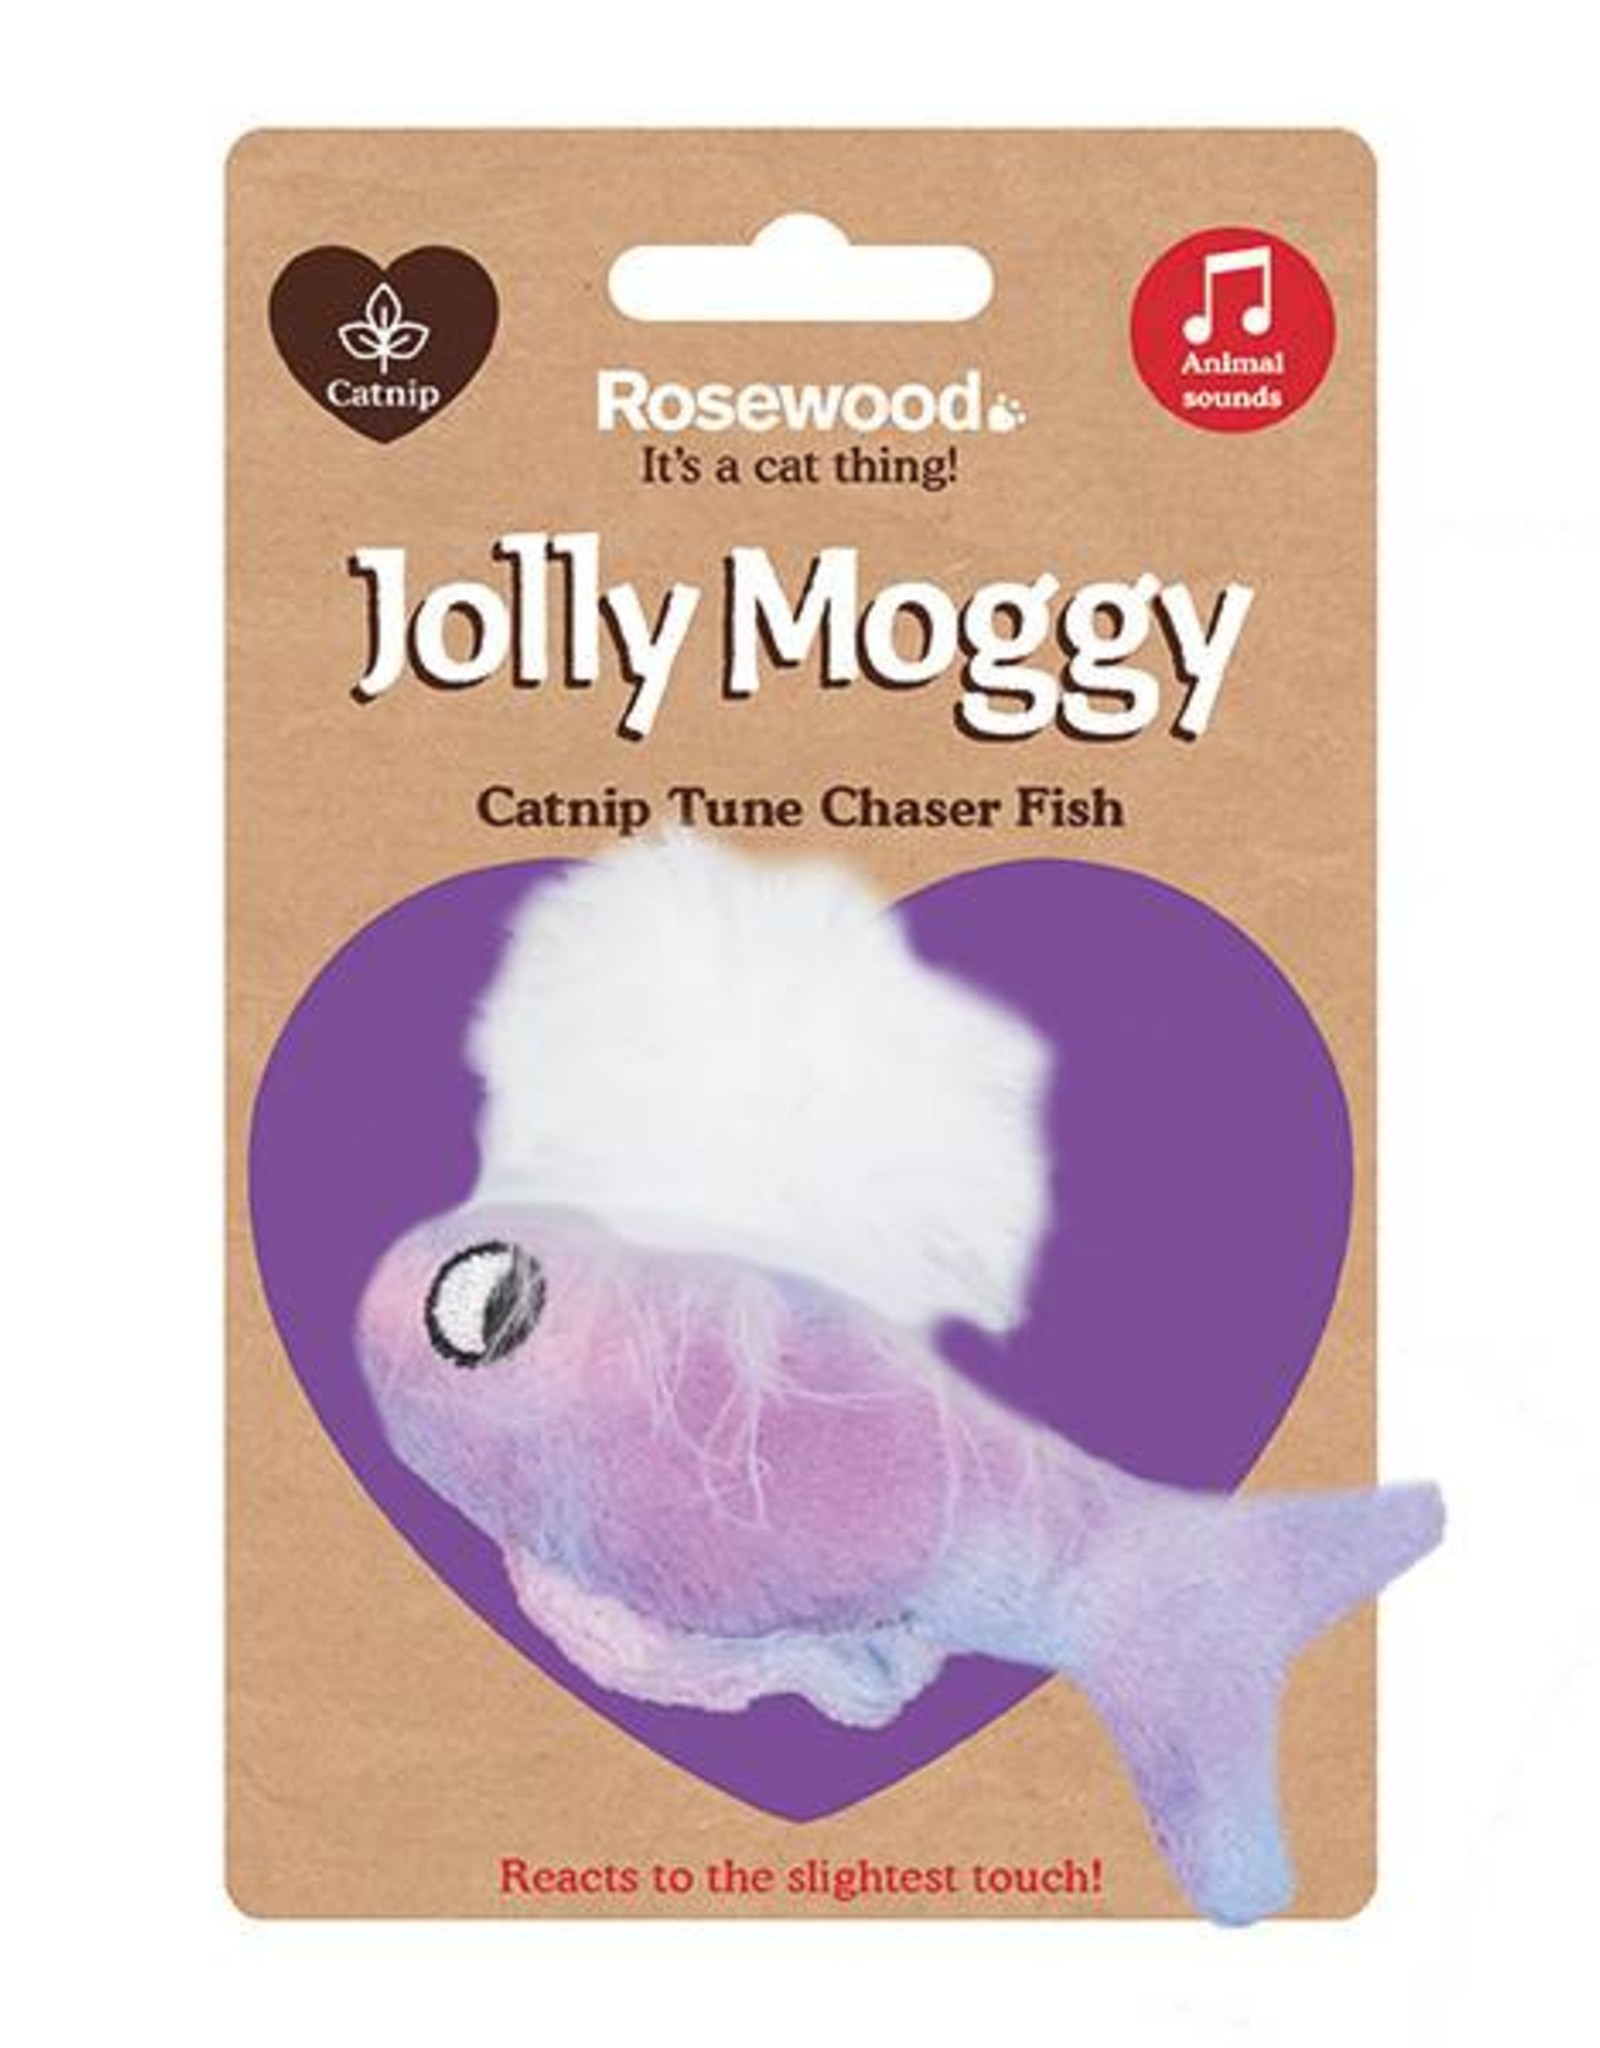 Rosewood Catnip Tune Chaser Fish Cat Toy